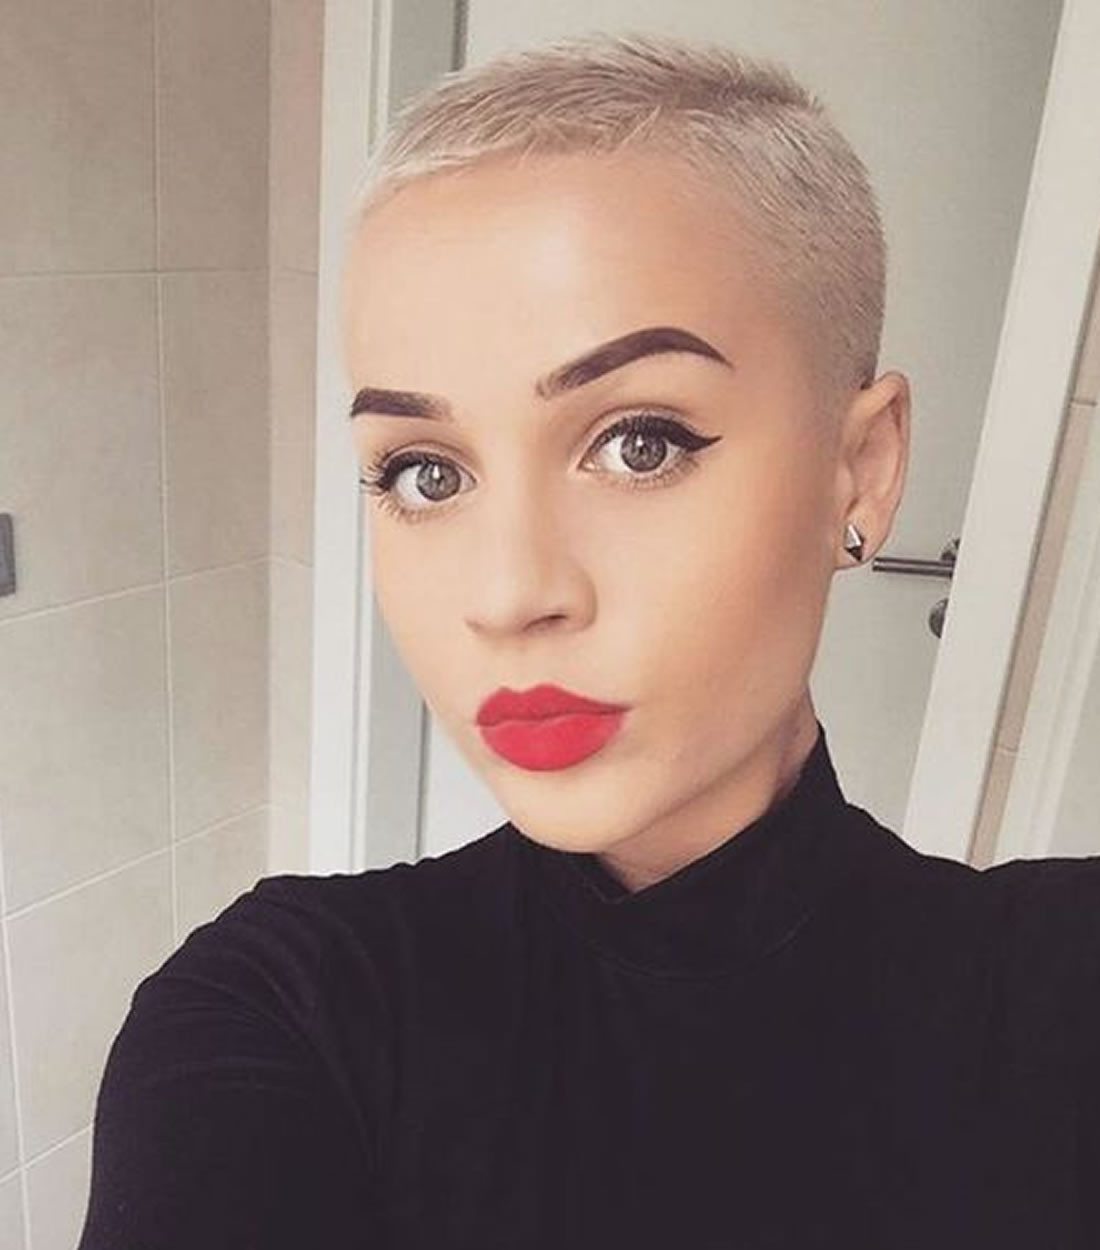 Best ideas about Female Shaved Head Hairstyles . Save or Pin 32 Exquisite African American Short Haircuts and Now.